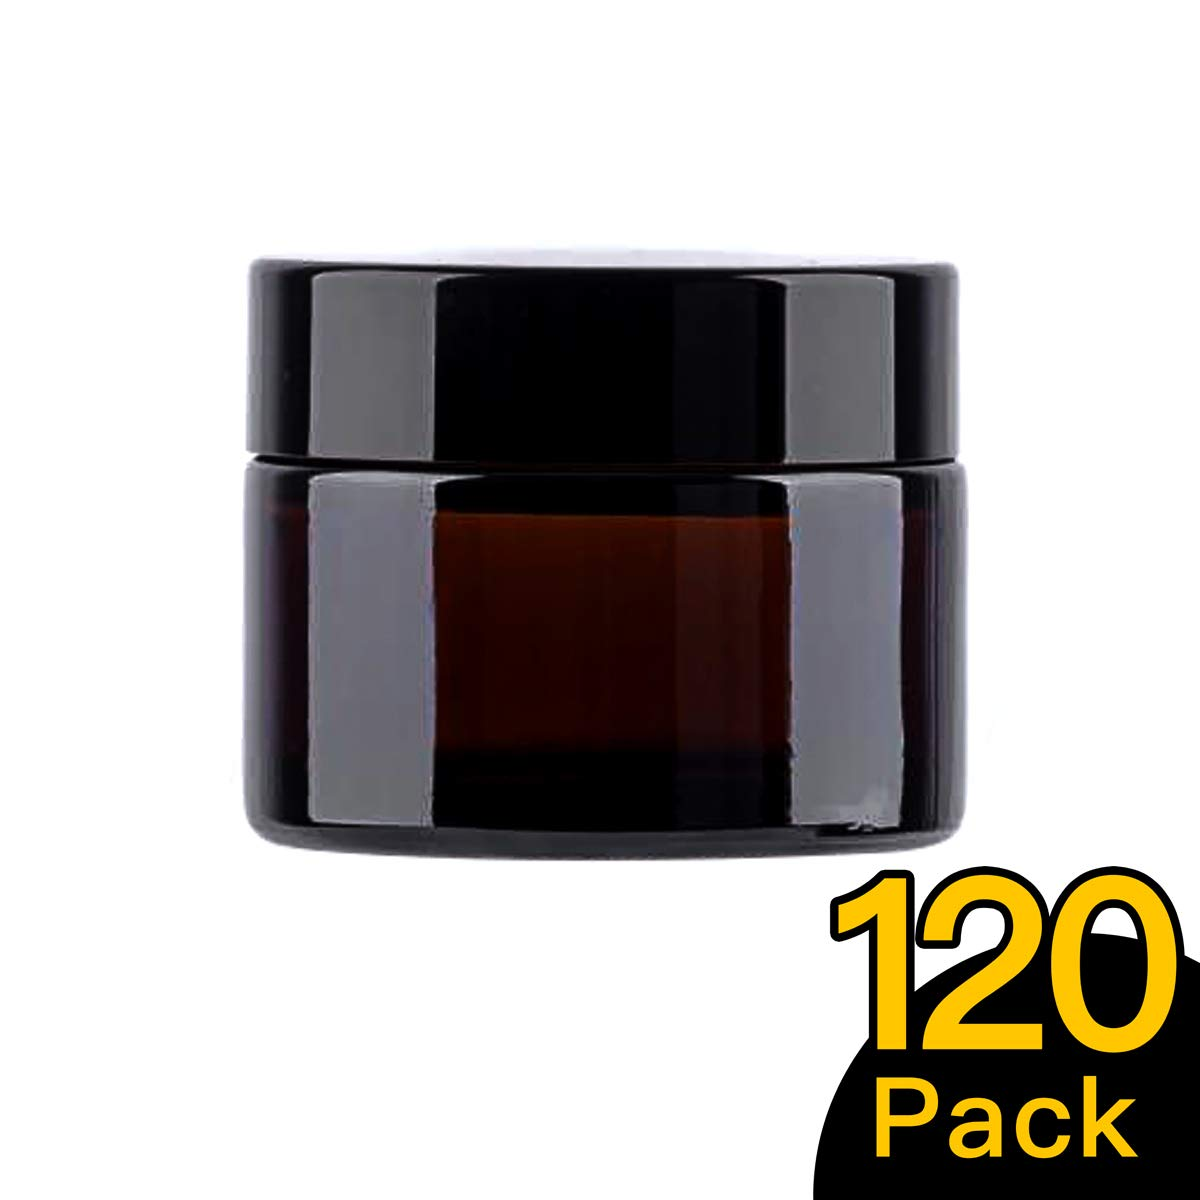 50ml / 1.7 oz, 120 Pack Snow Diamond Empty Amber Round Glass Jars, with White Inner Liners and black Lids, High End Glass Containers for Salve Cream, Premium Vials (50ml / 1.7 oz, 120 Pack)